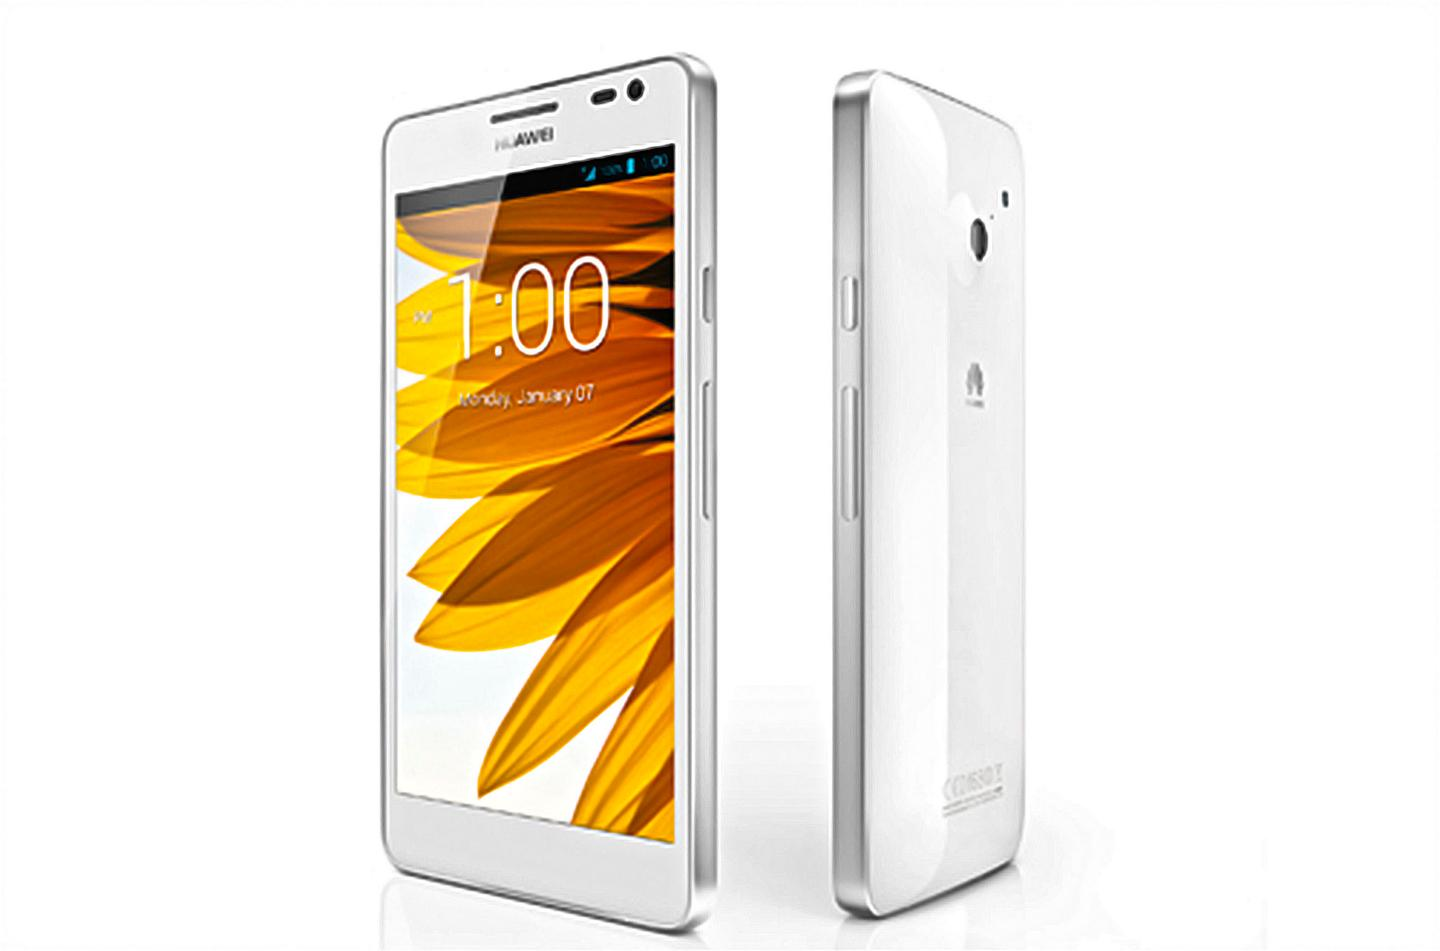 The Ascend D2 is smaller, but has better specs